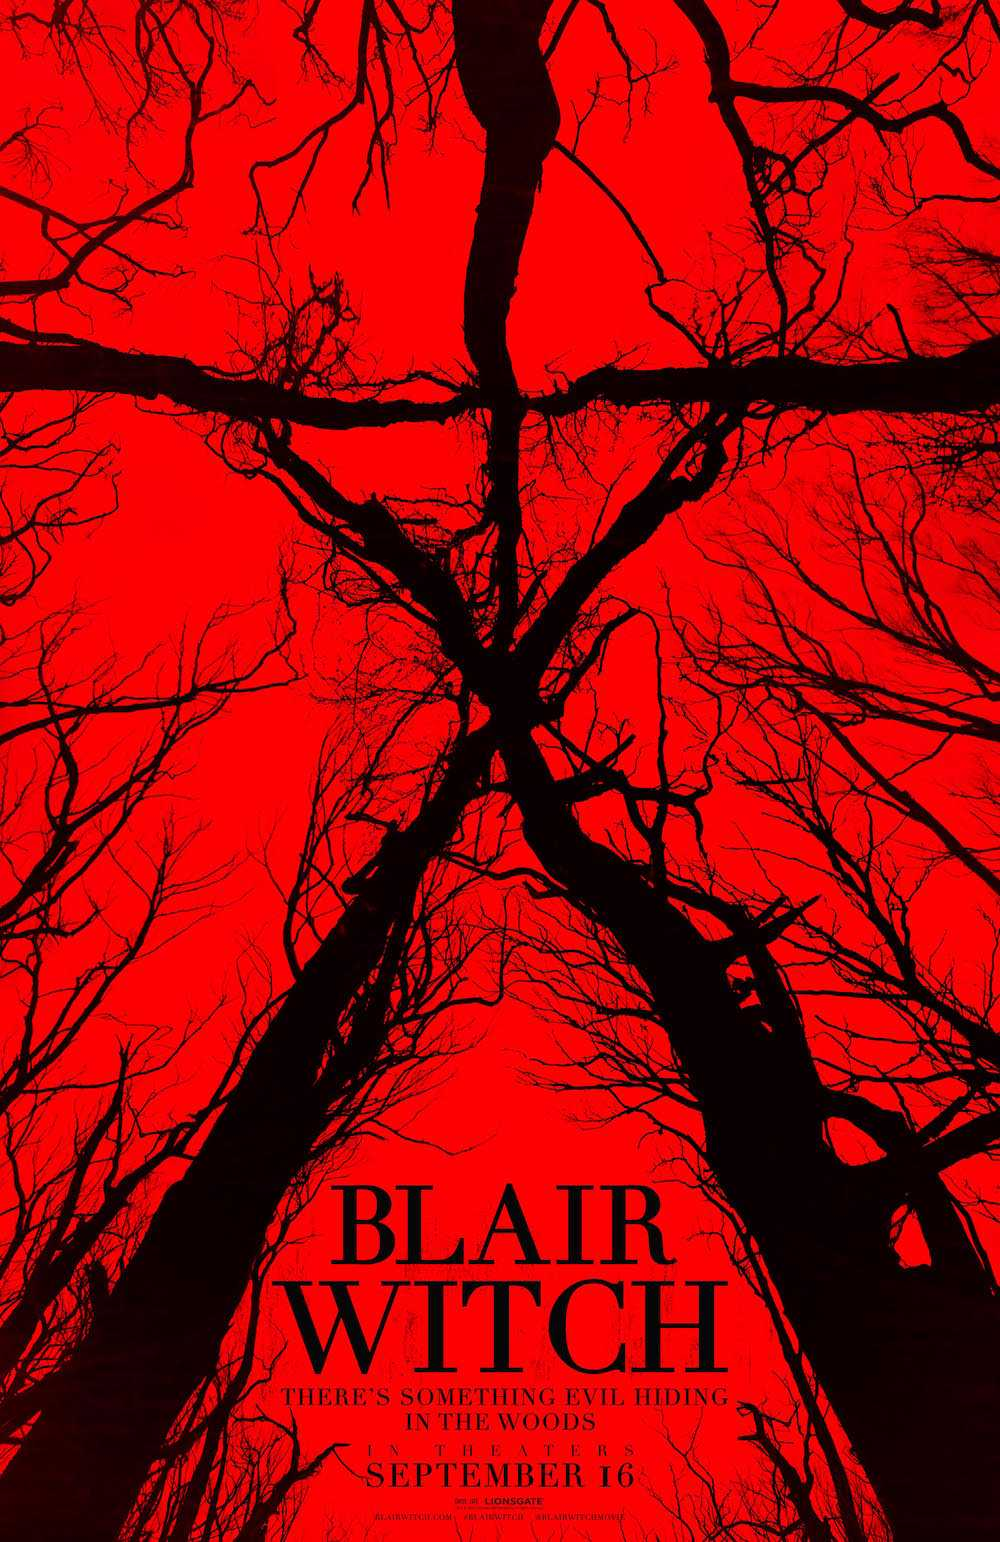 """""""Blair Witch"""" is the rare horror sequel that maintains the tone and quality of the original while also bringing new scares. Photo courtesy of Lionsgate."""